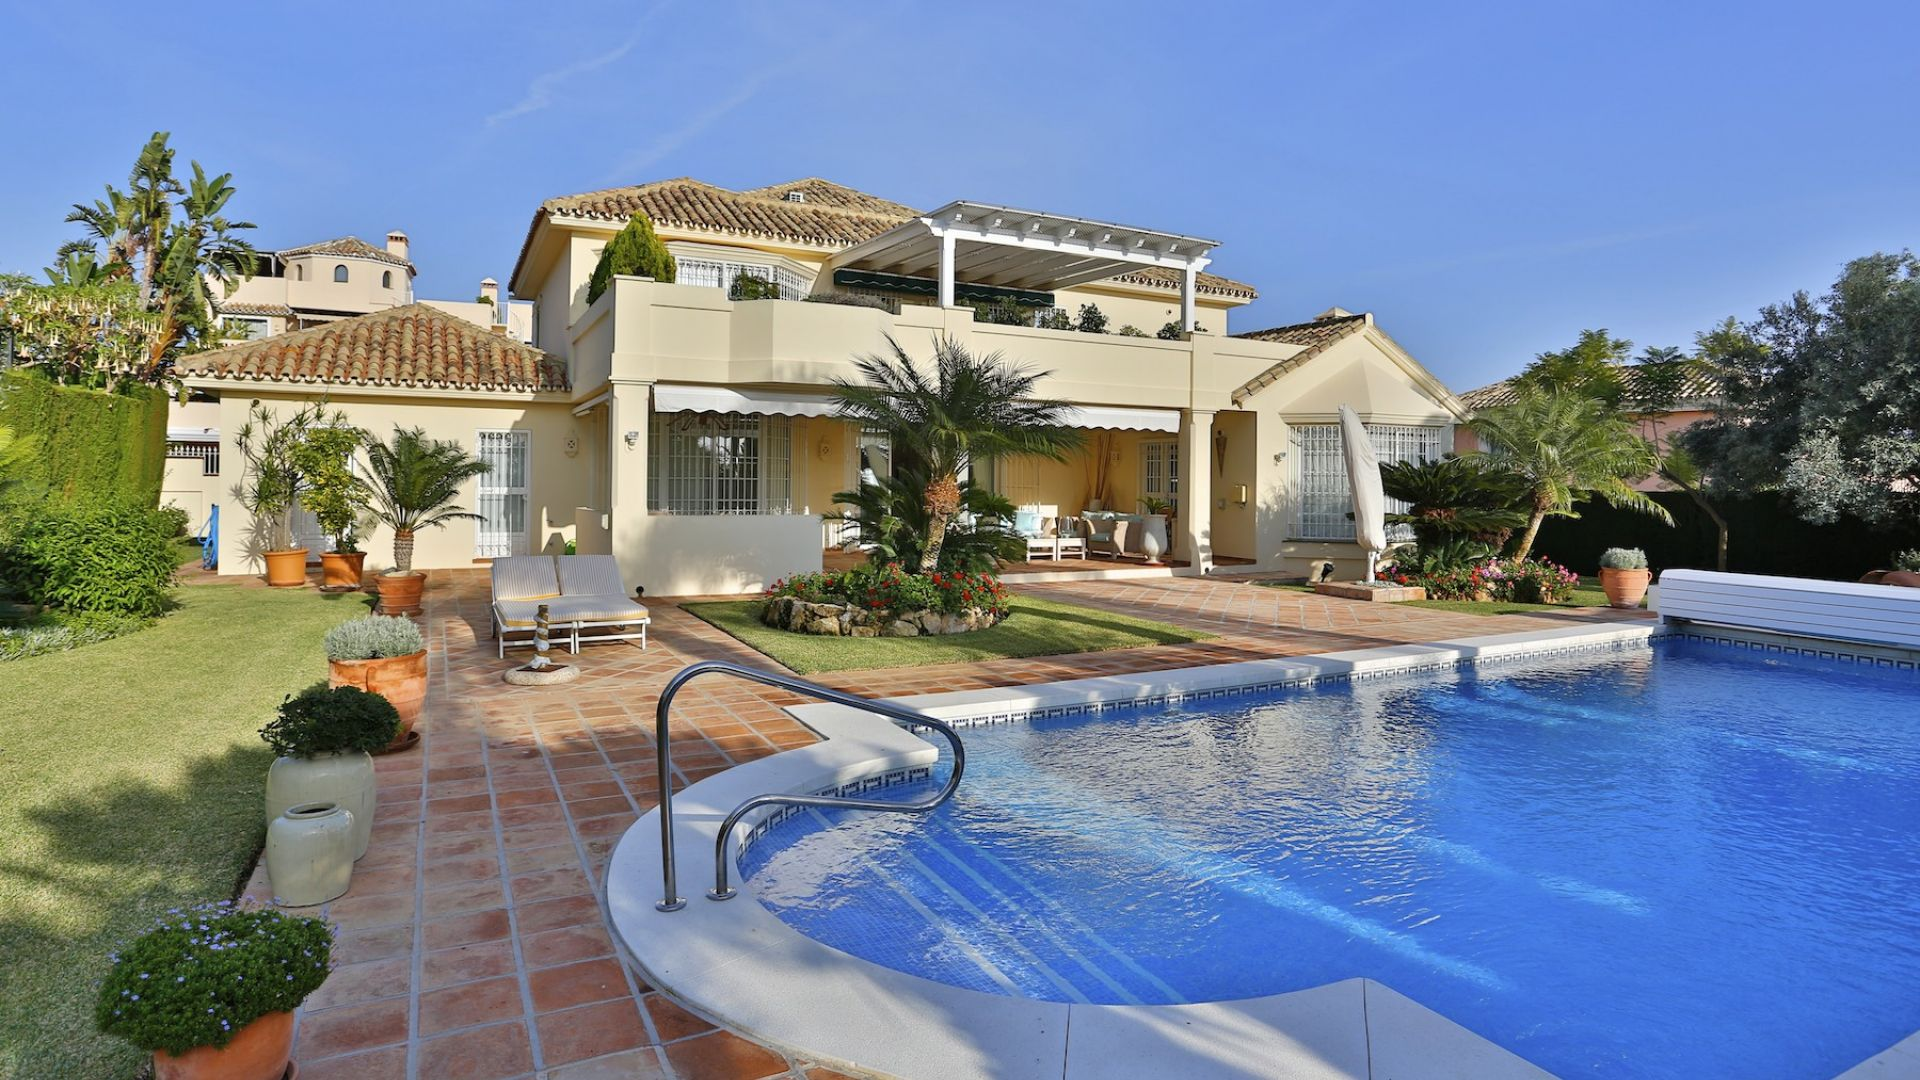 Single Family Home for Sale at Impeccable villa with excellent qualities Santa María Golf Marbella, Costa Del Sol 29600 Spain